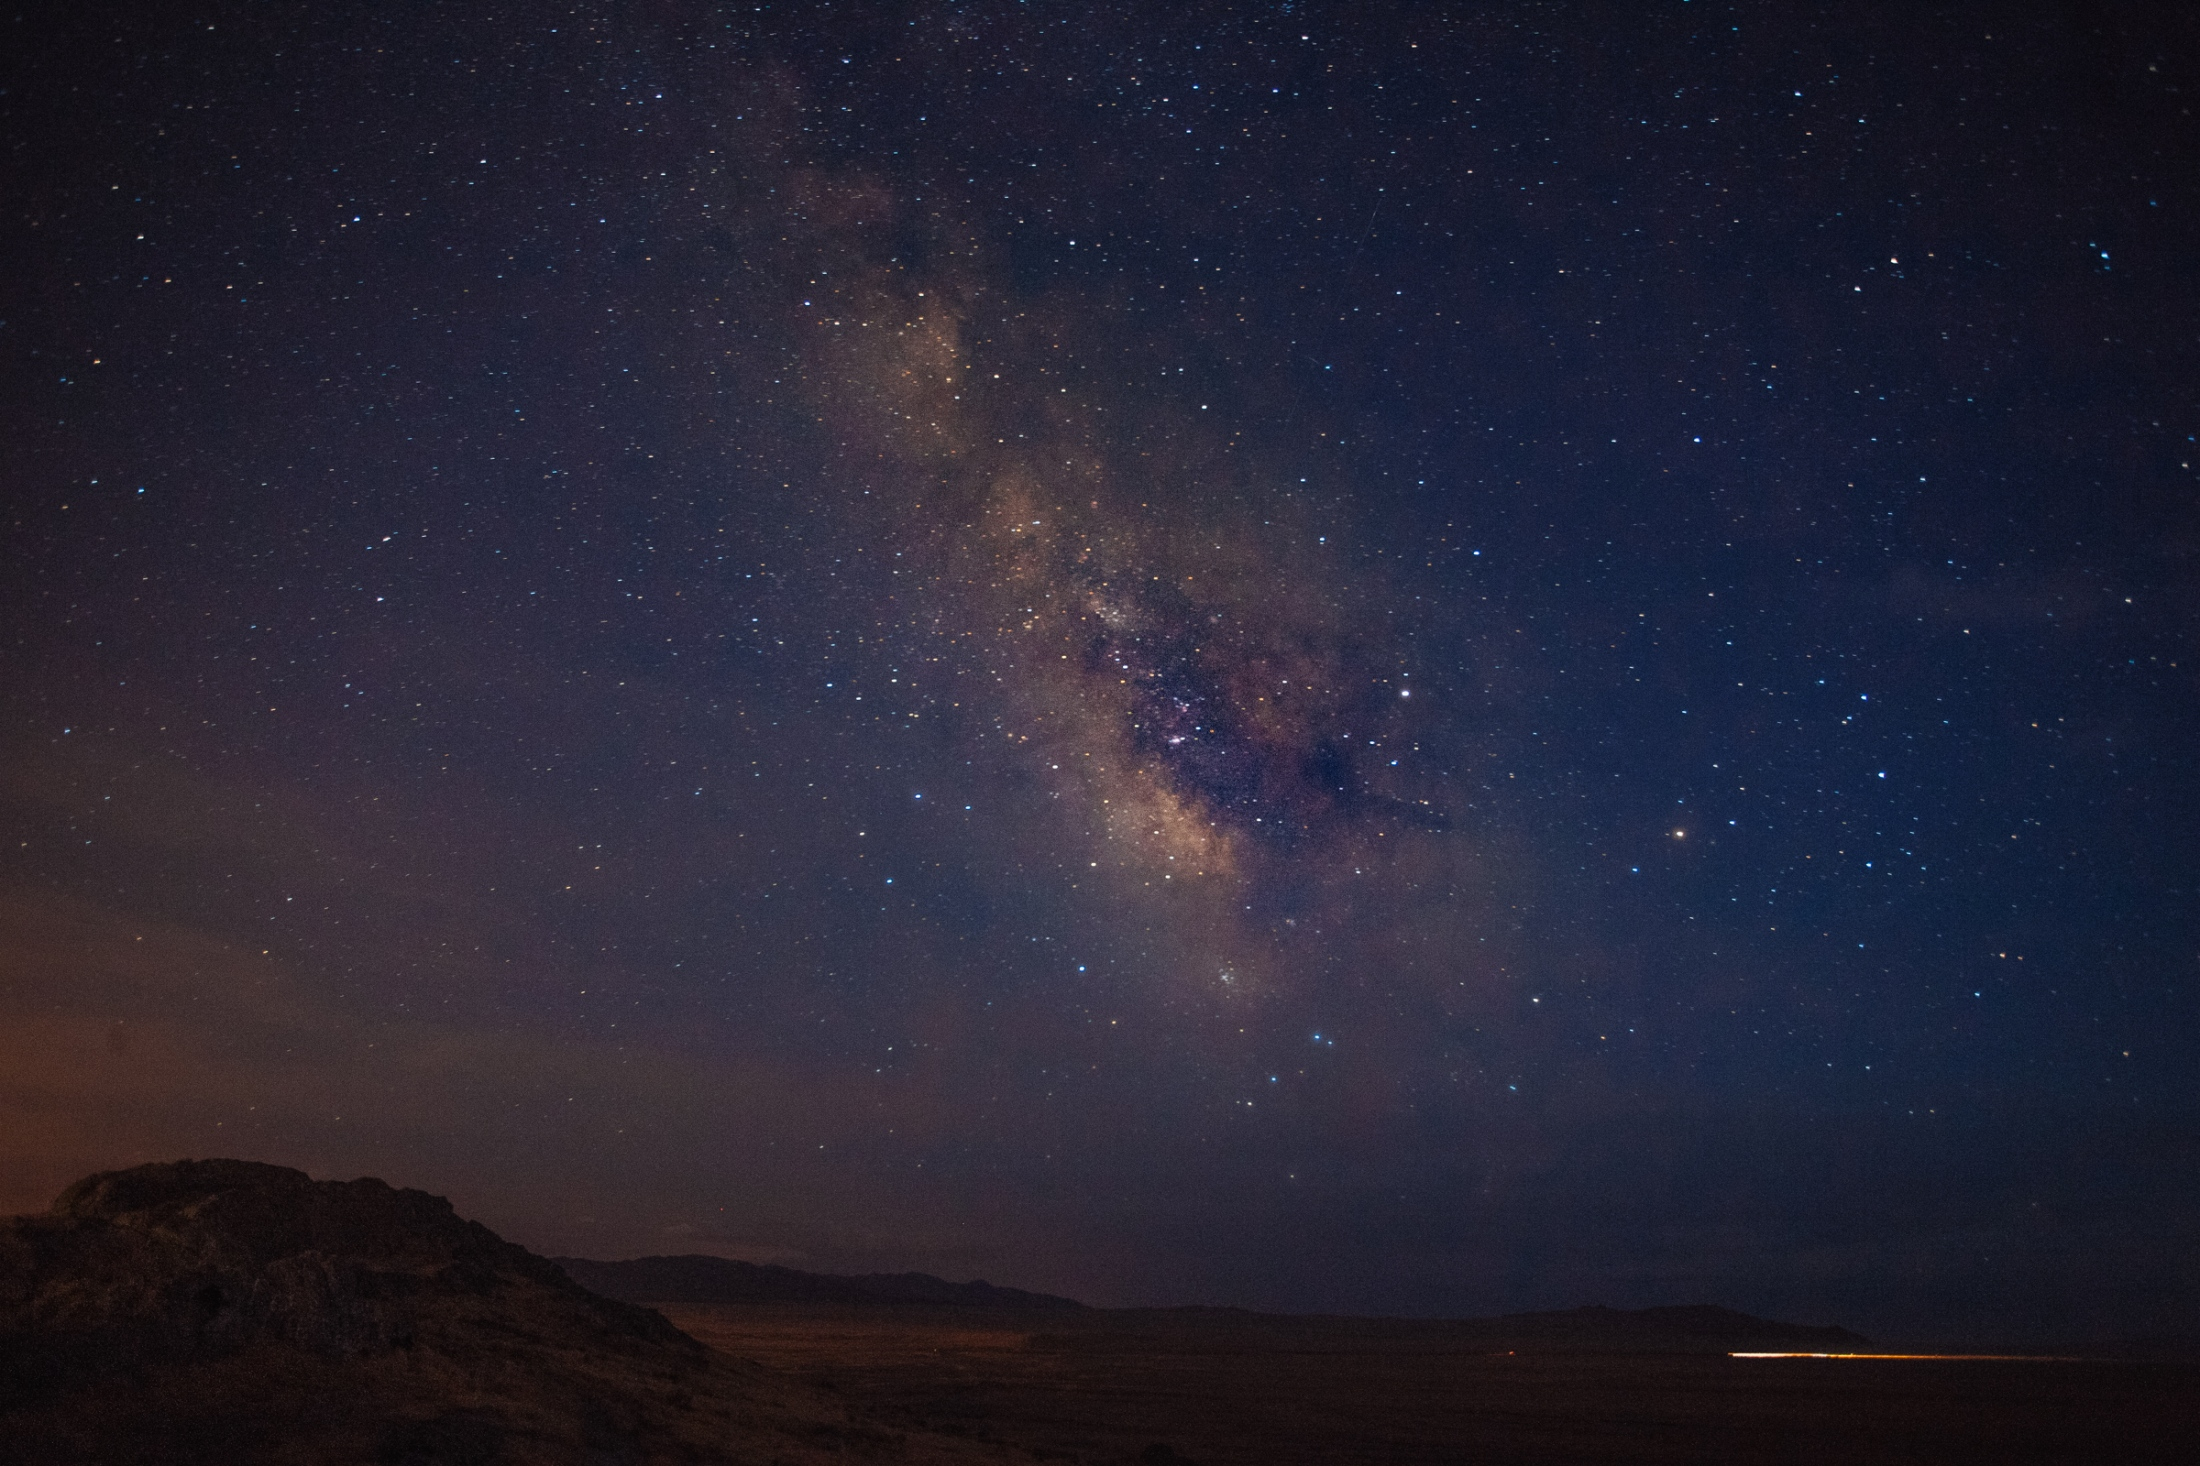 View of the Milky Way Galaxy, Interstate 80, UT.